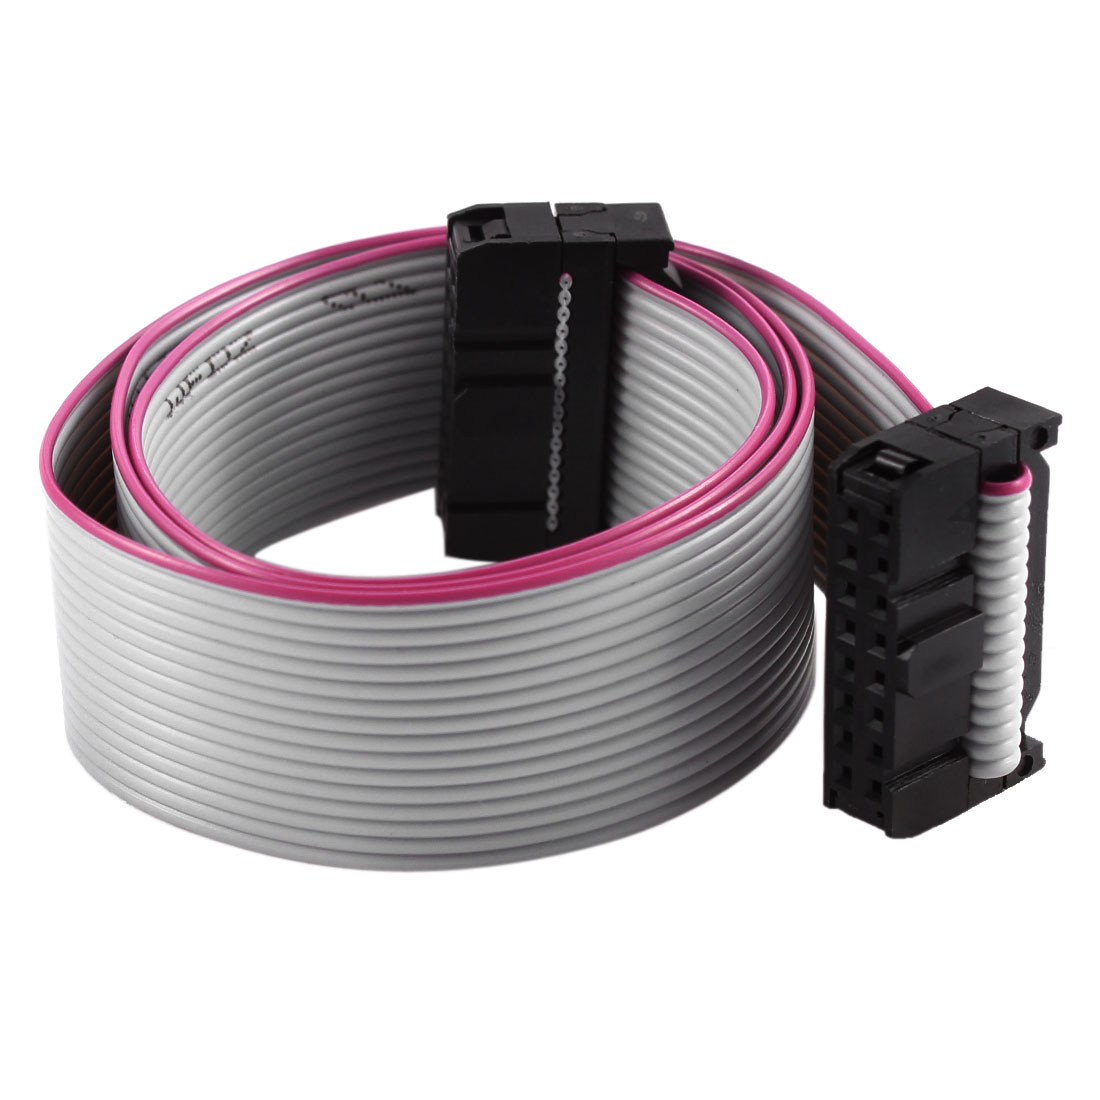 2.54mm Pitch 2x16P 16 Pin 16 Wire Female to Female IDC Flat Ribbon Cable 48cm